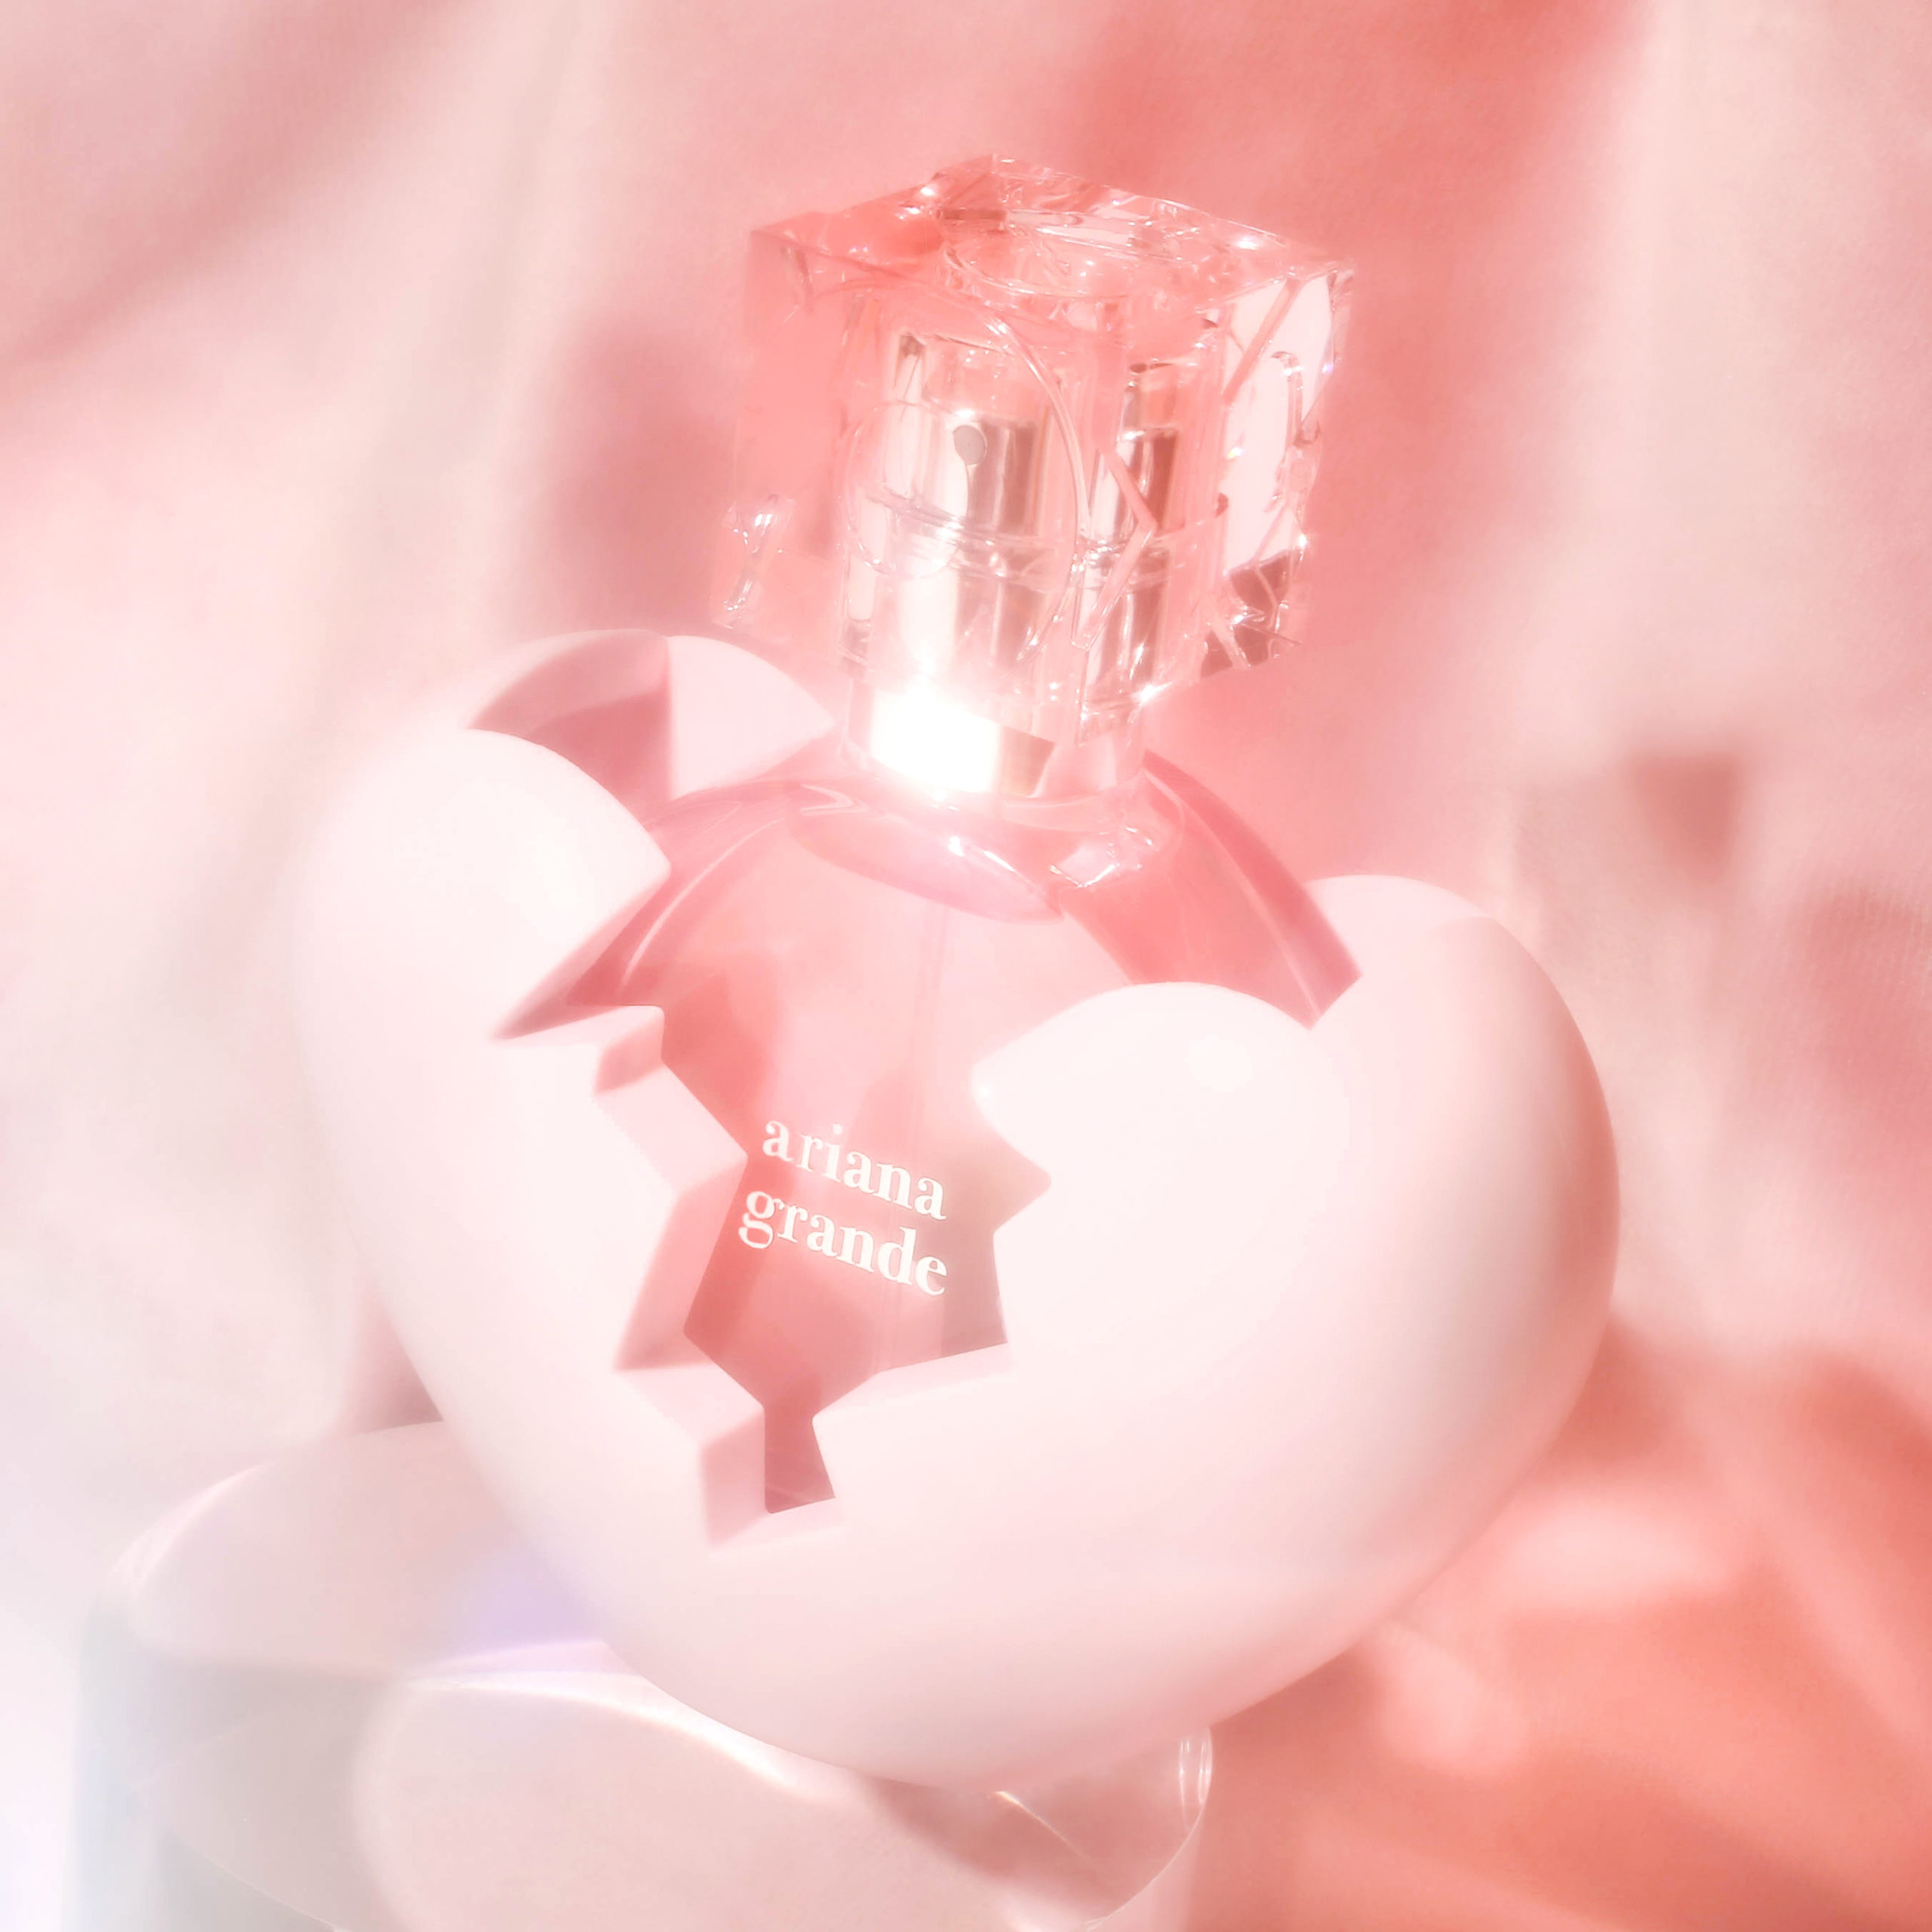 Win an Ariana Grande umbrella and perfume bundle from The Fragrance Shop